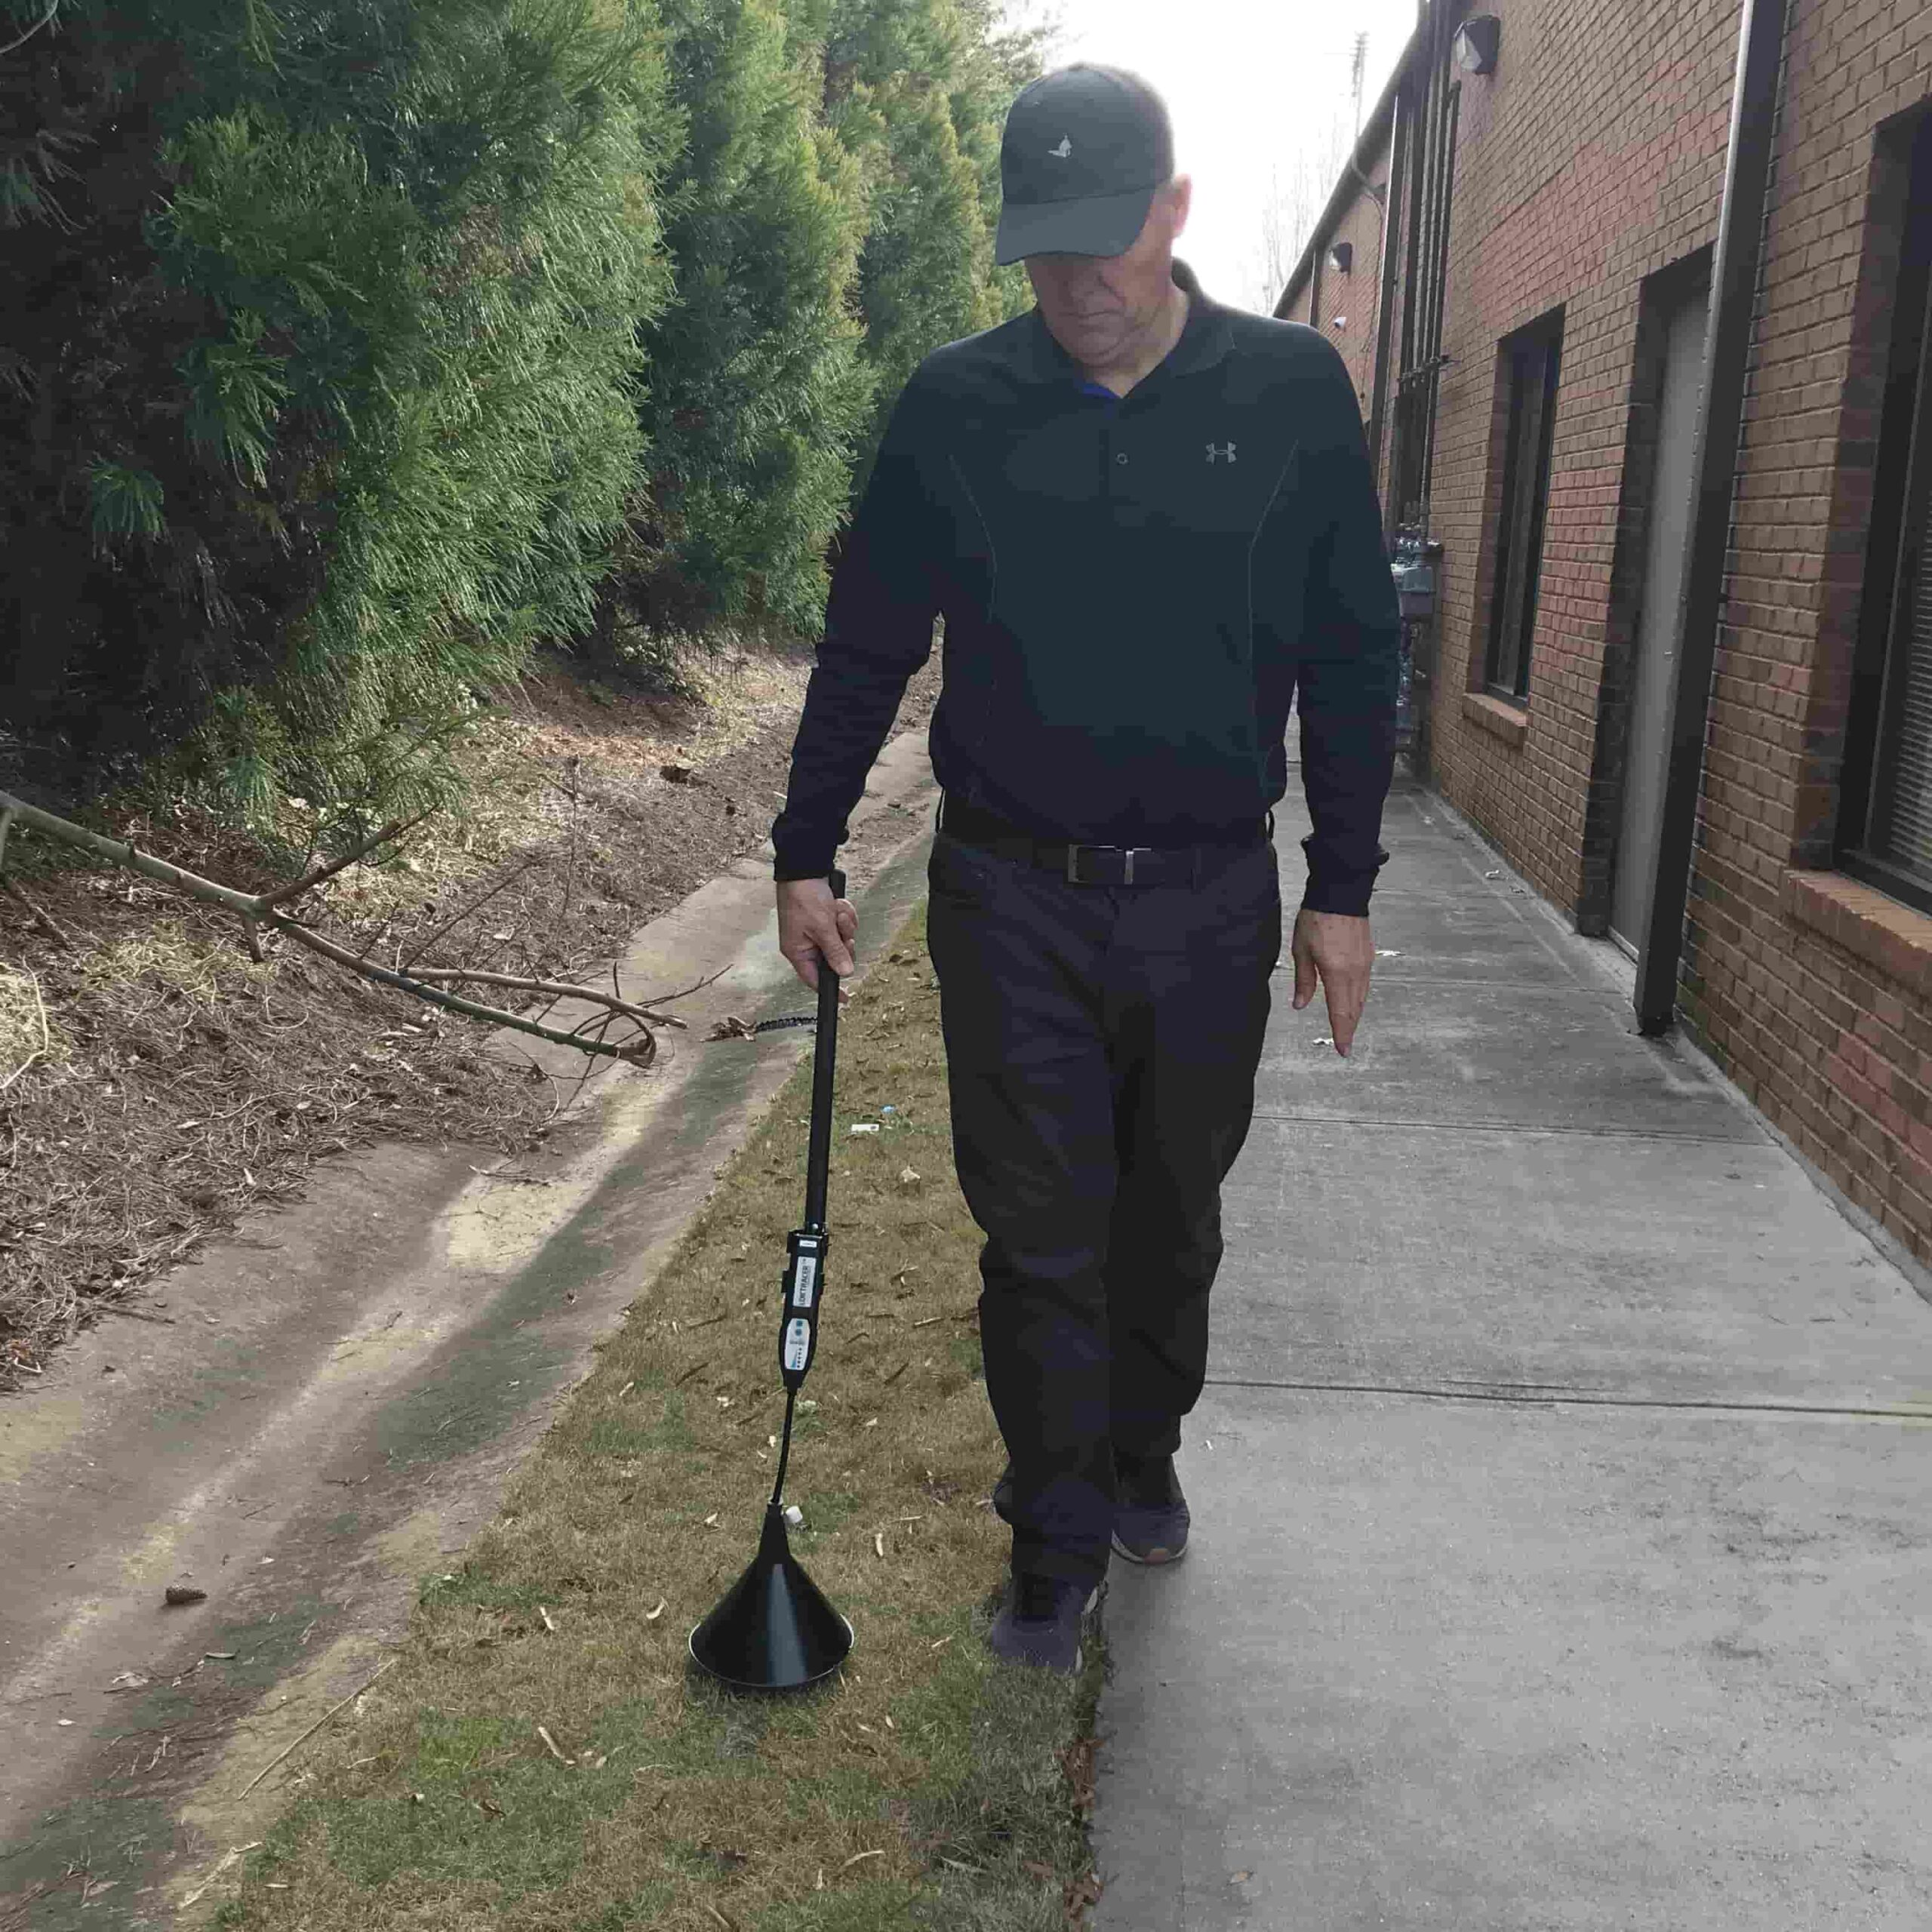 subsurface water line leak detection to find underground pipe leaks fast